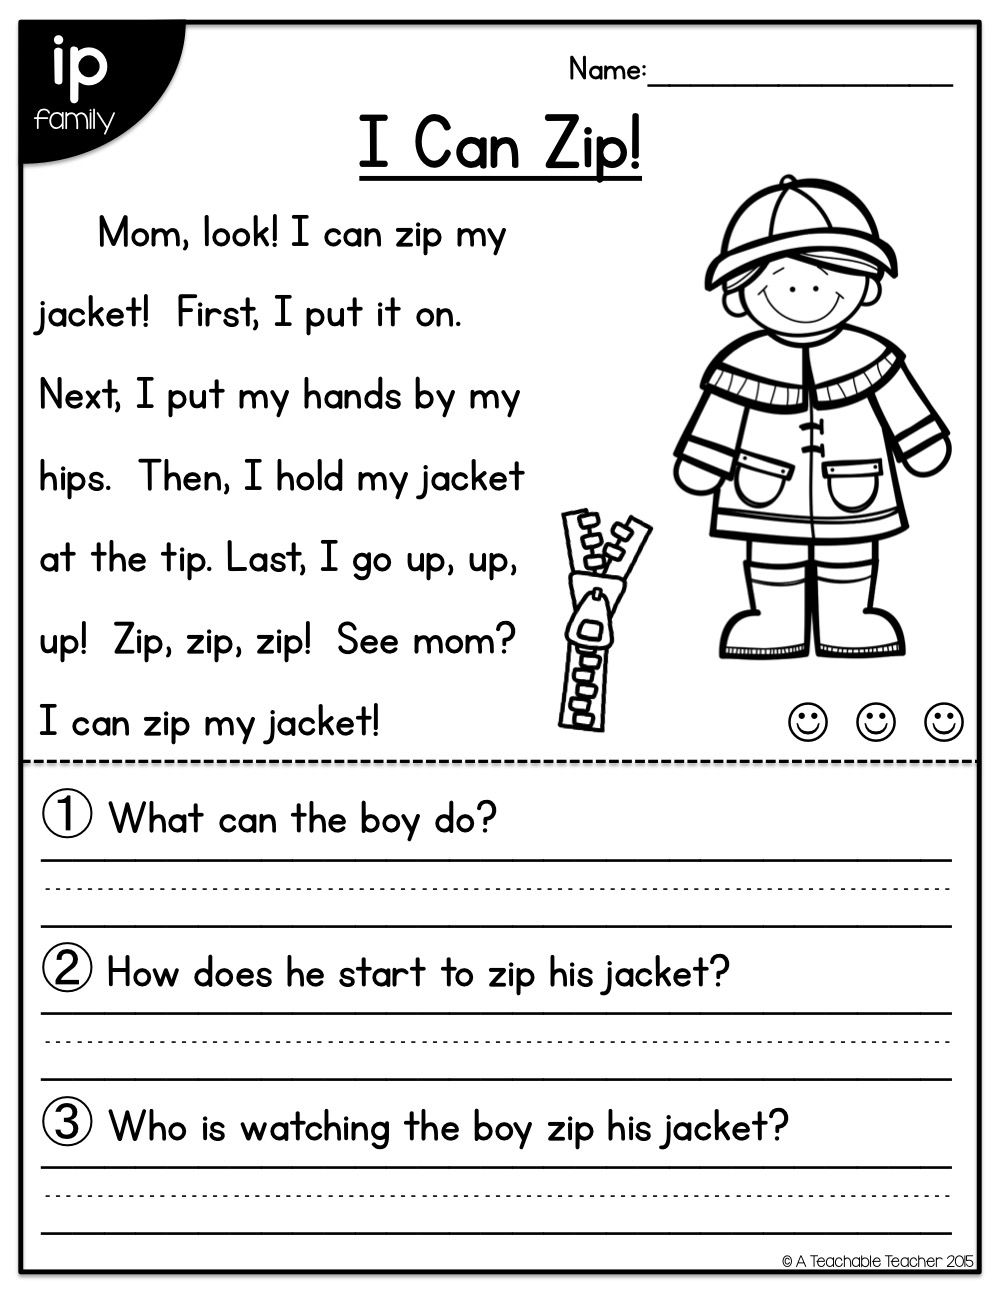 Worksheets Comprehension Passages For Grade 1 short vowel reading passages all in one comprehension perfect for kindergarteners and first grade intervention